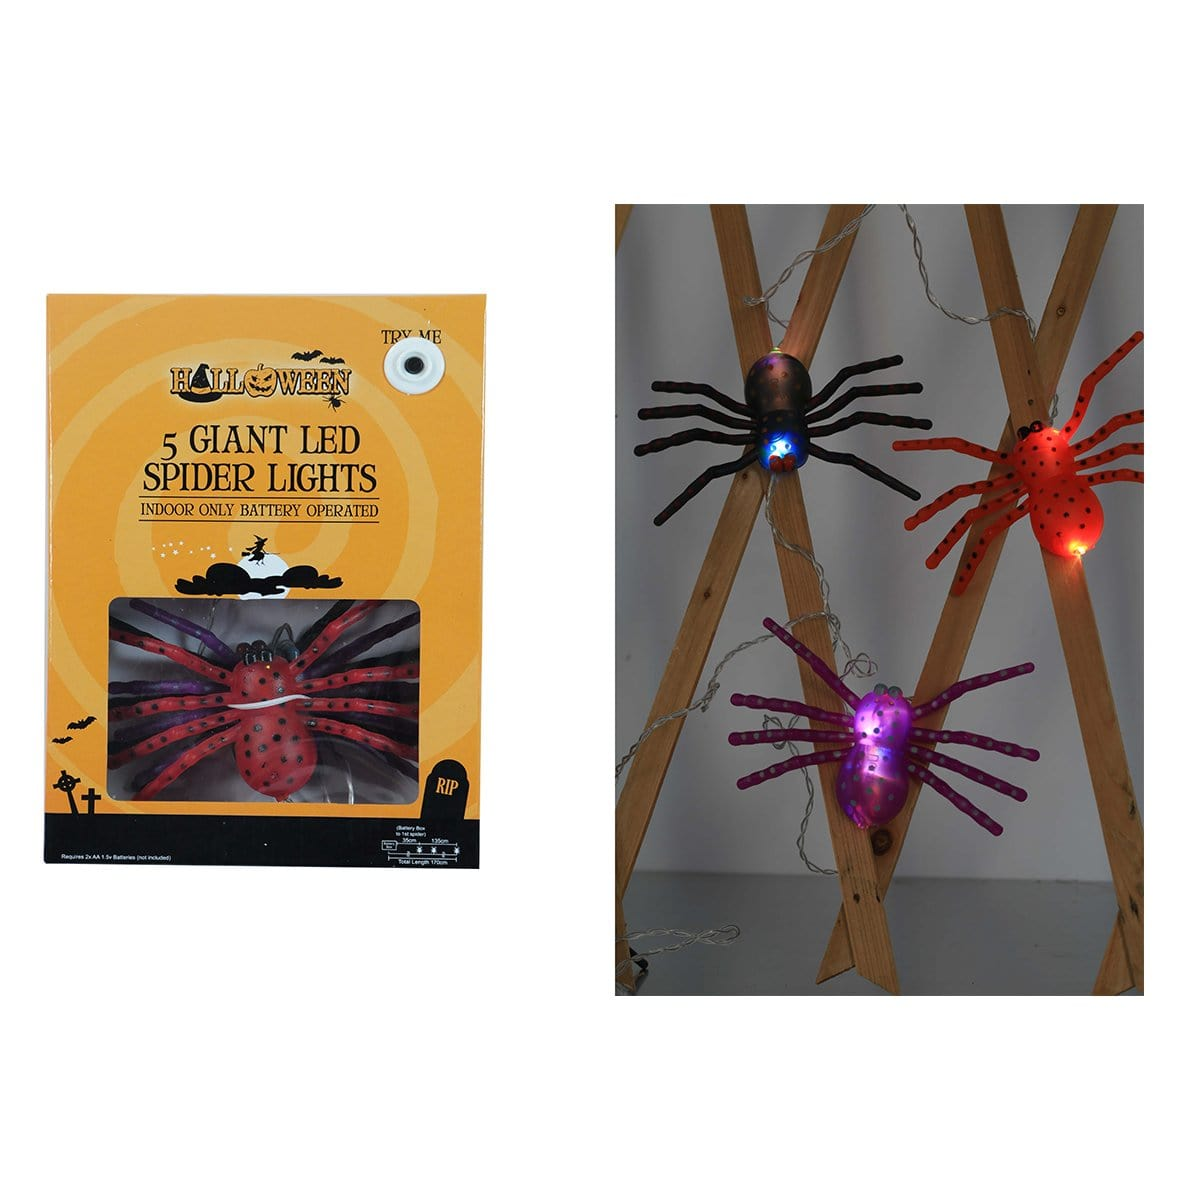 GIANT LED SPIDER LIGHTS 5PK - Christmas World